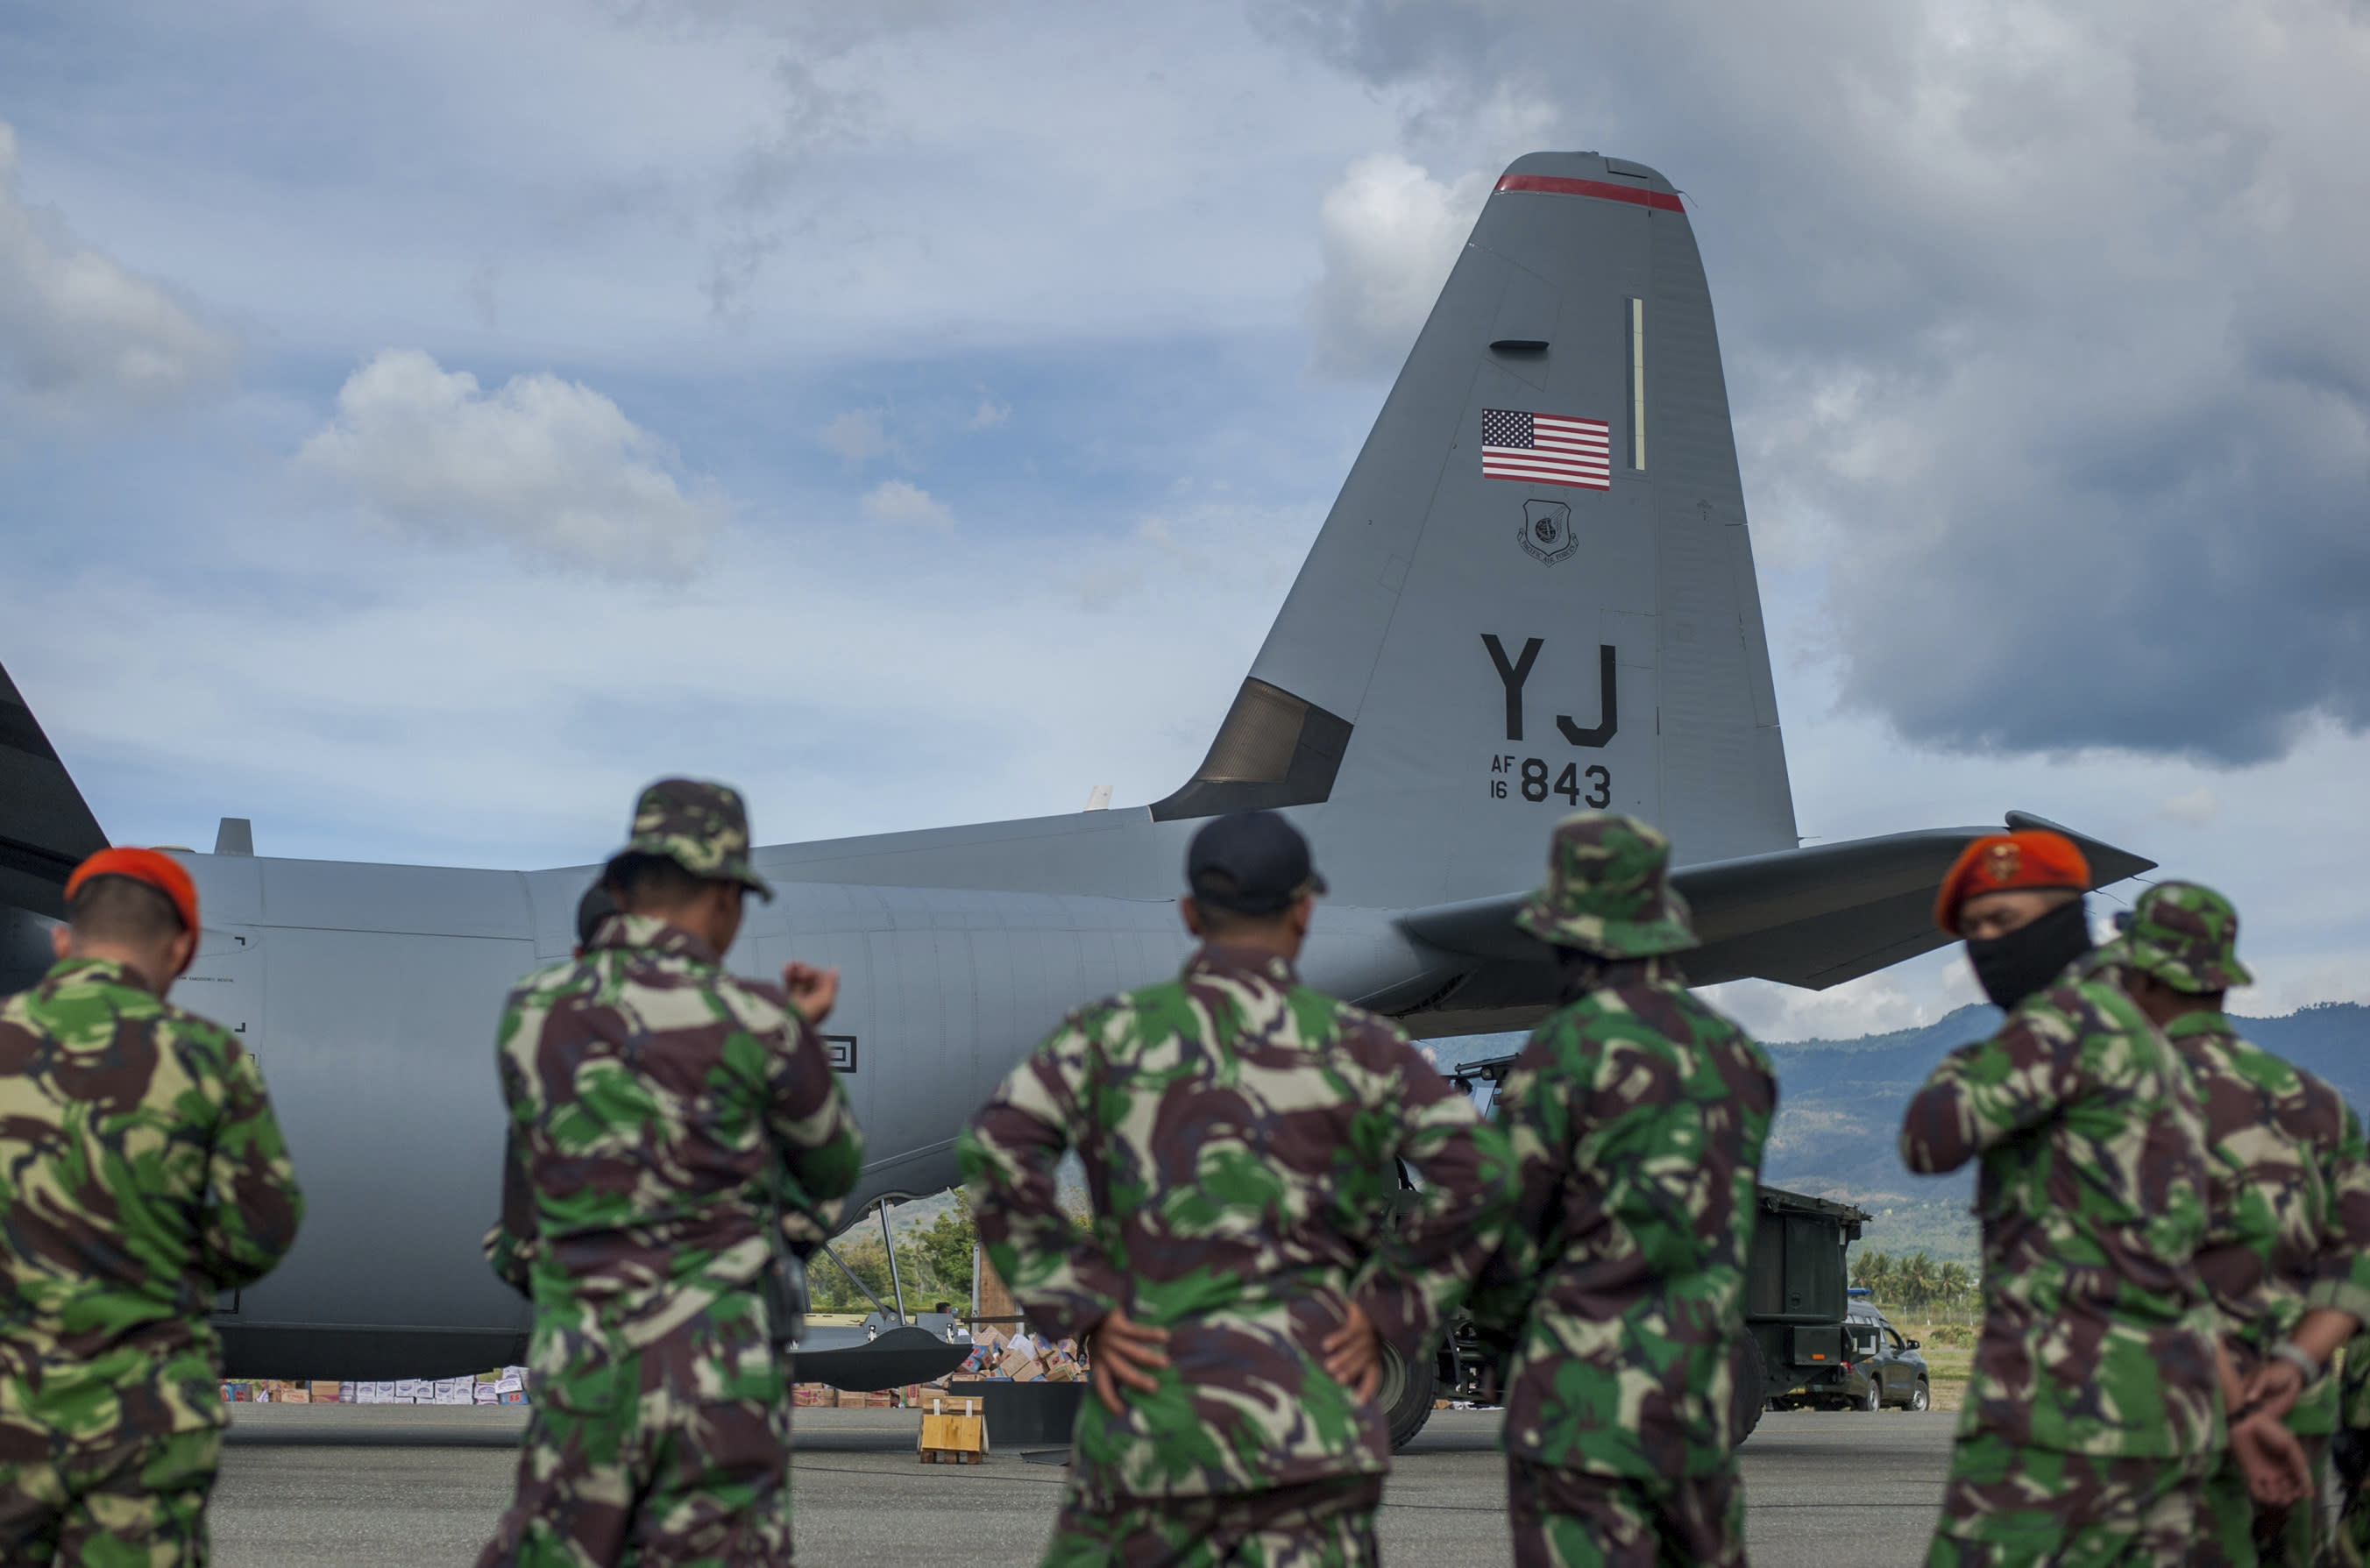 Indonesian soldiers stand near a U.S. Air Force cargo plane delivering relief goods at Mutiara Sis Al-Jufrie Airport in Palu, Central Sulawesi, Indonesia, Sunday, Oct. 7, 2018. Indonesia's disaster agency said the number of dead had climbed and many more people could be buried, especially in the Palu neighborhoods of Petobo and Balaroa, where thousands of homes were damaged or sucked into deep mud when the Sept. 28 quake caused loose soil to liquefy. (AP Photo/Fauzy Chaniago)